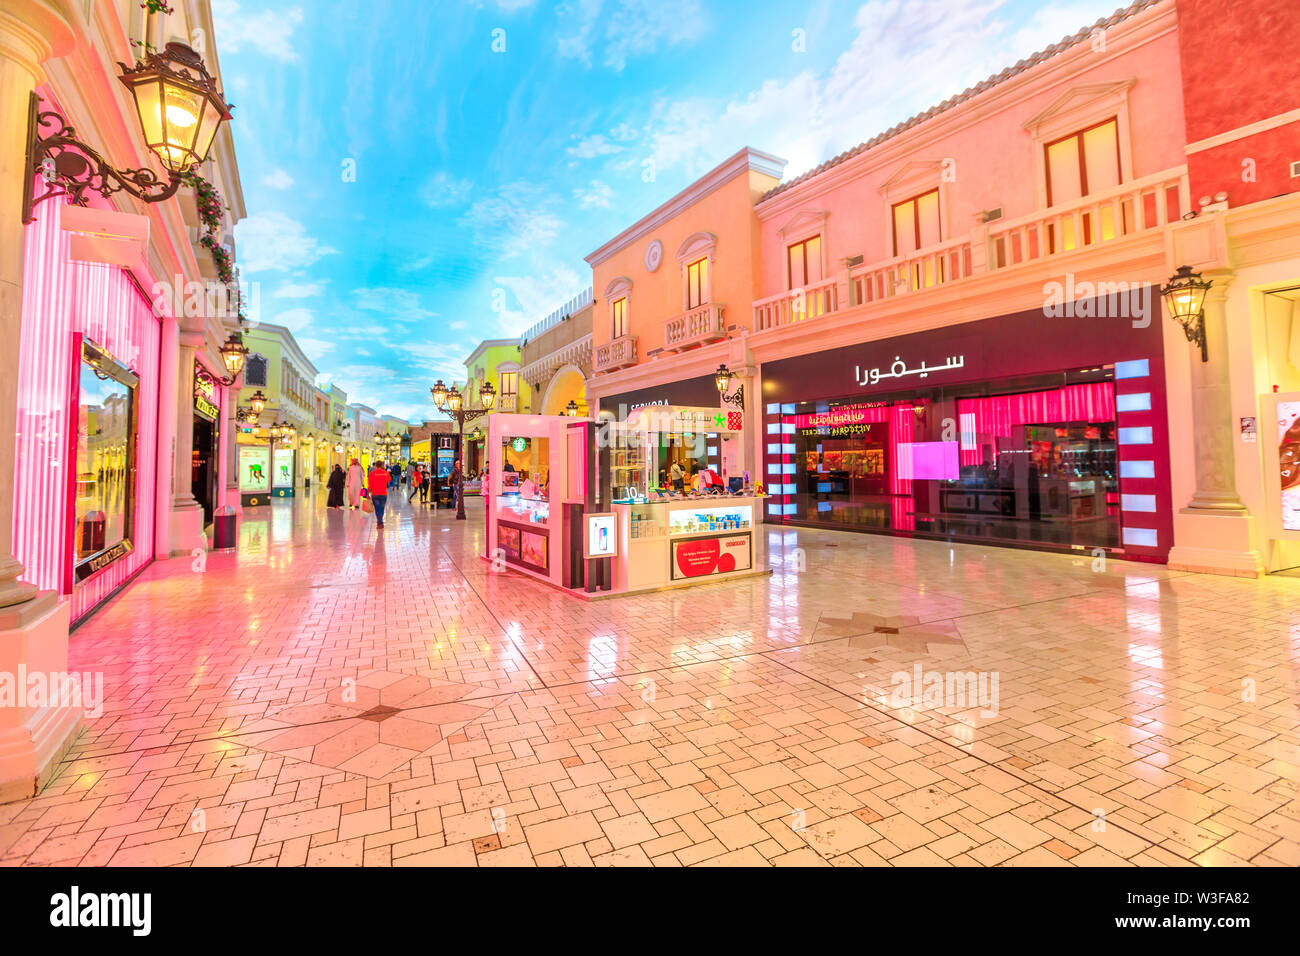 Doha, Qatar - February 21, 2019: inside Villaggio Mall, a shopping center in Aspire Zone between Hyatt Plaza and Sports City. Luxury brands, expensive - Stock Image